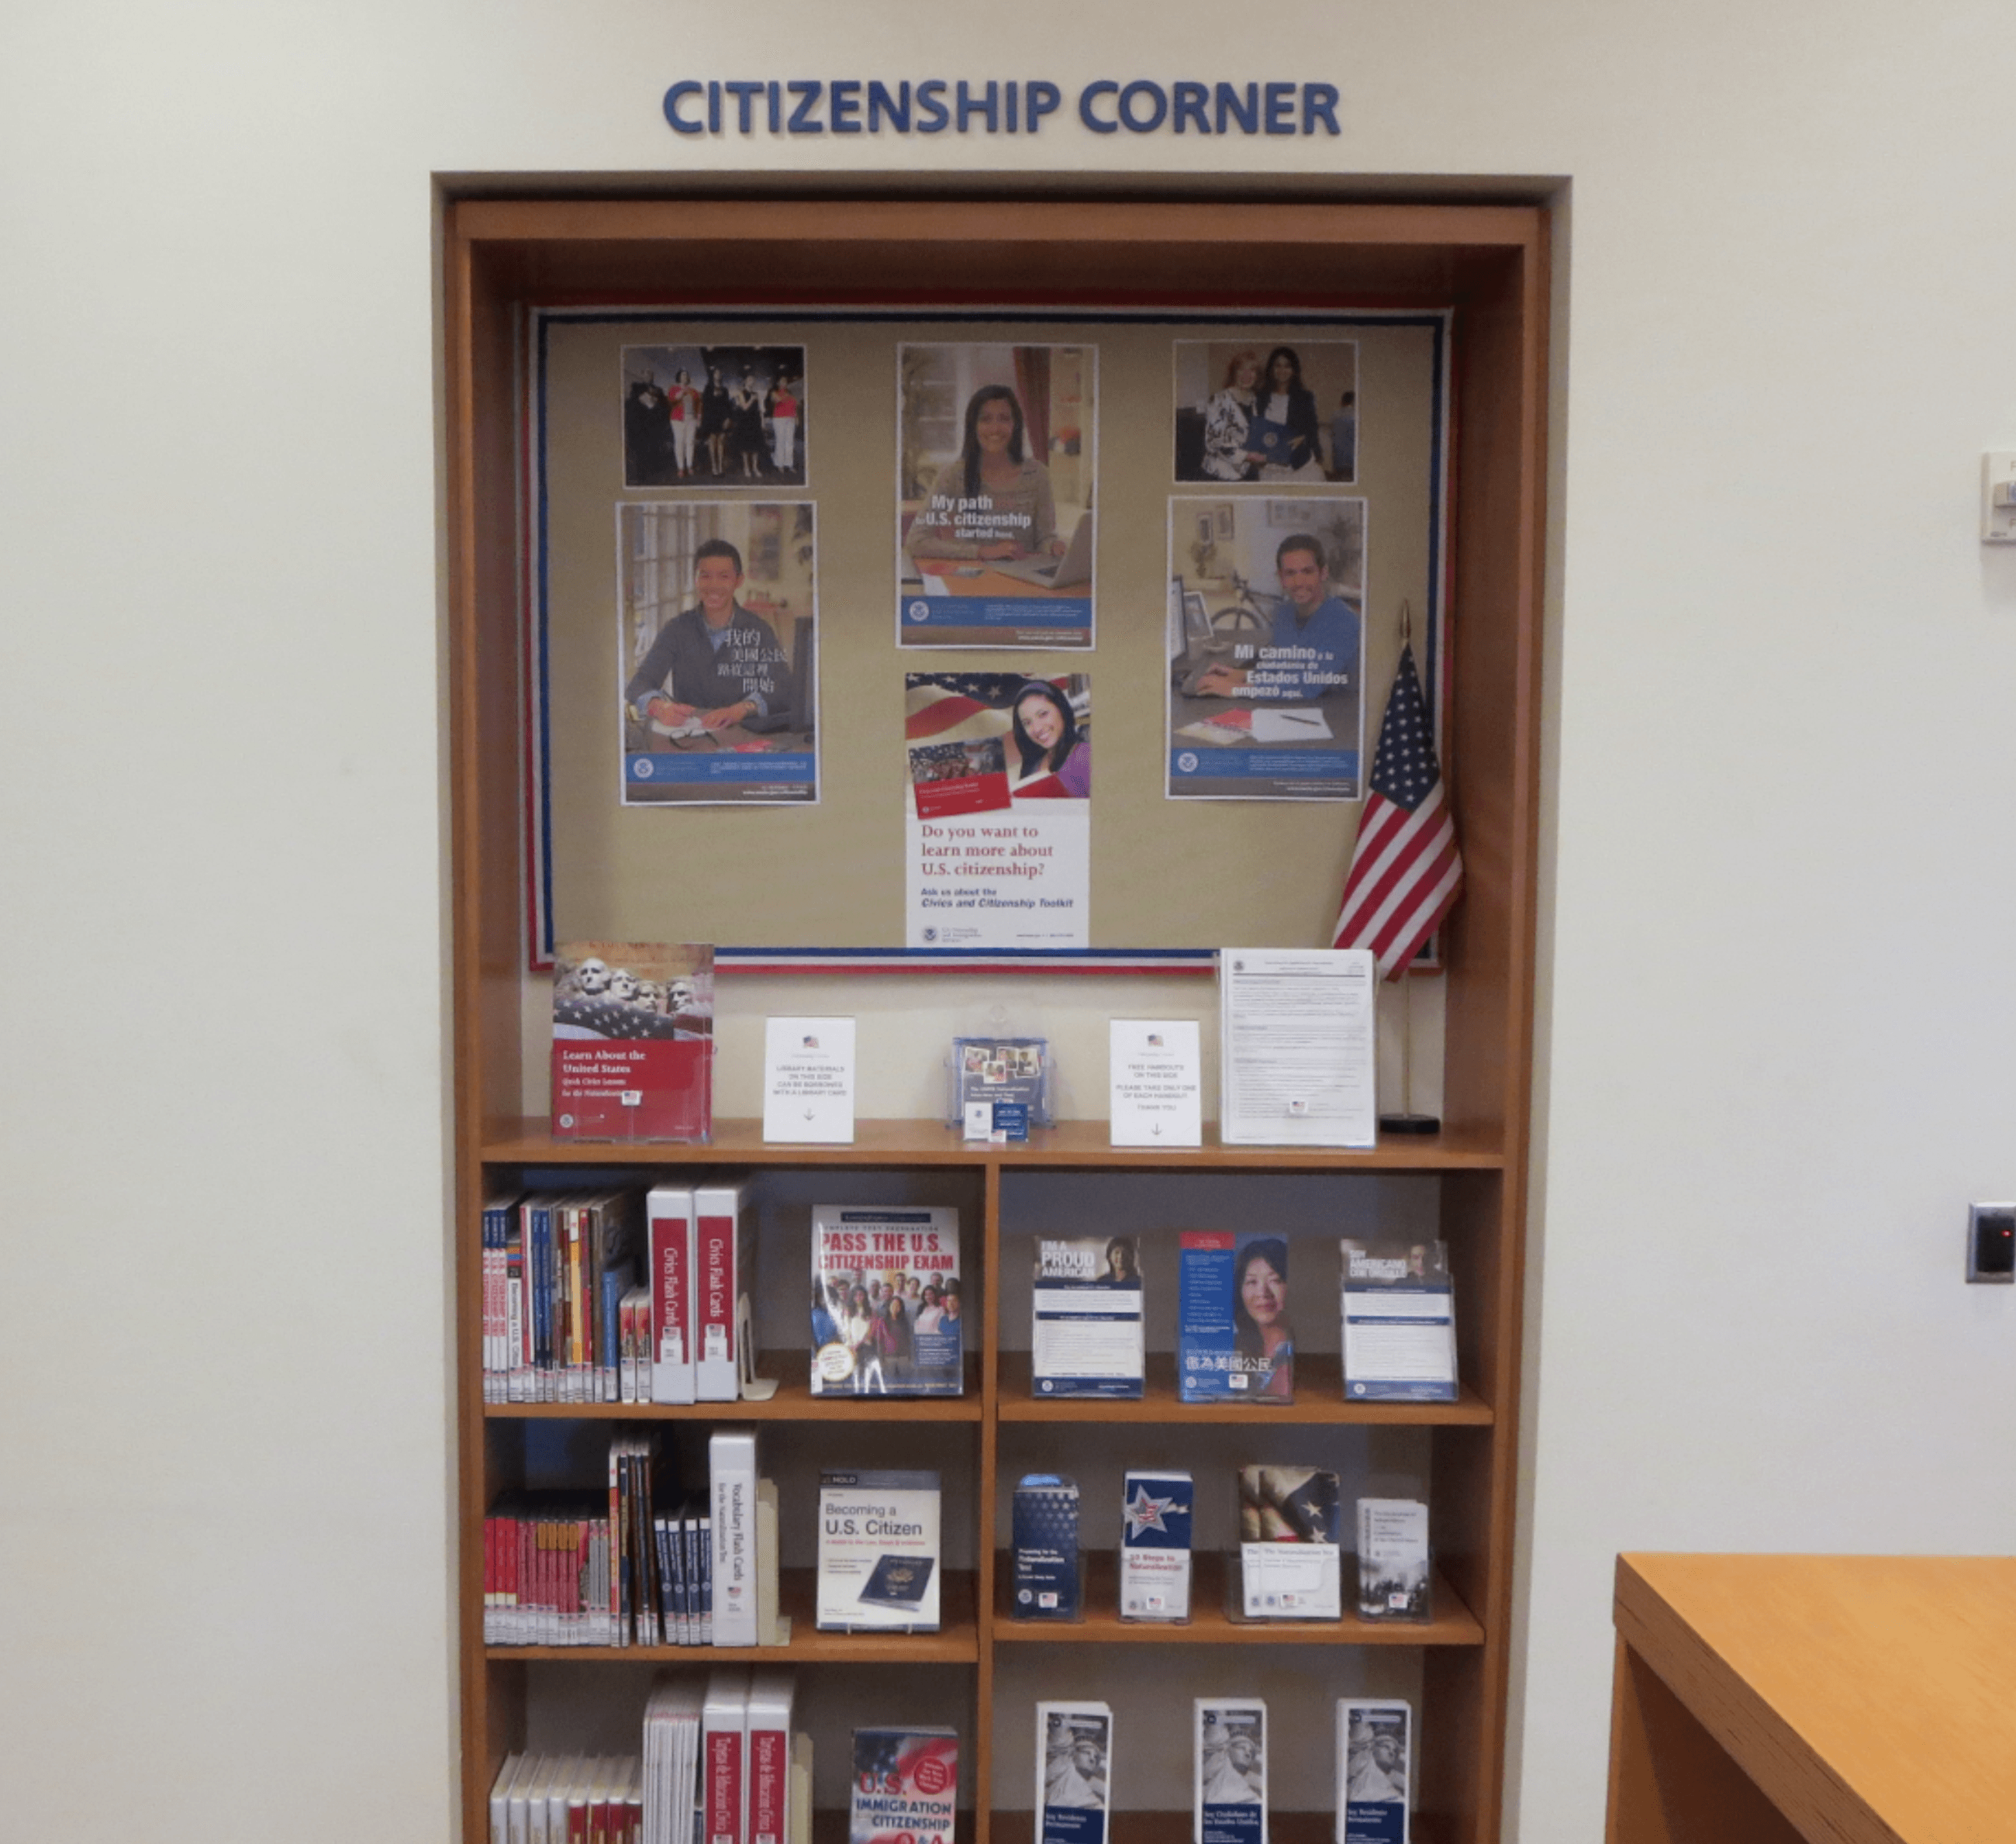 Citizenship Corner